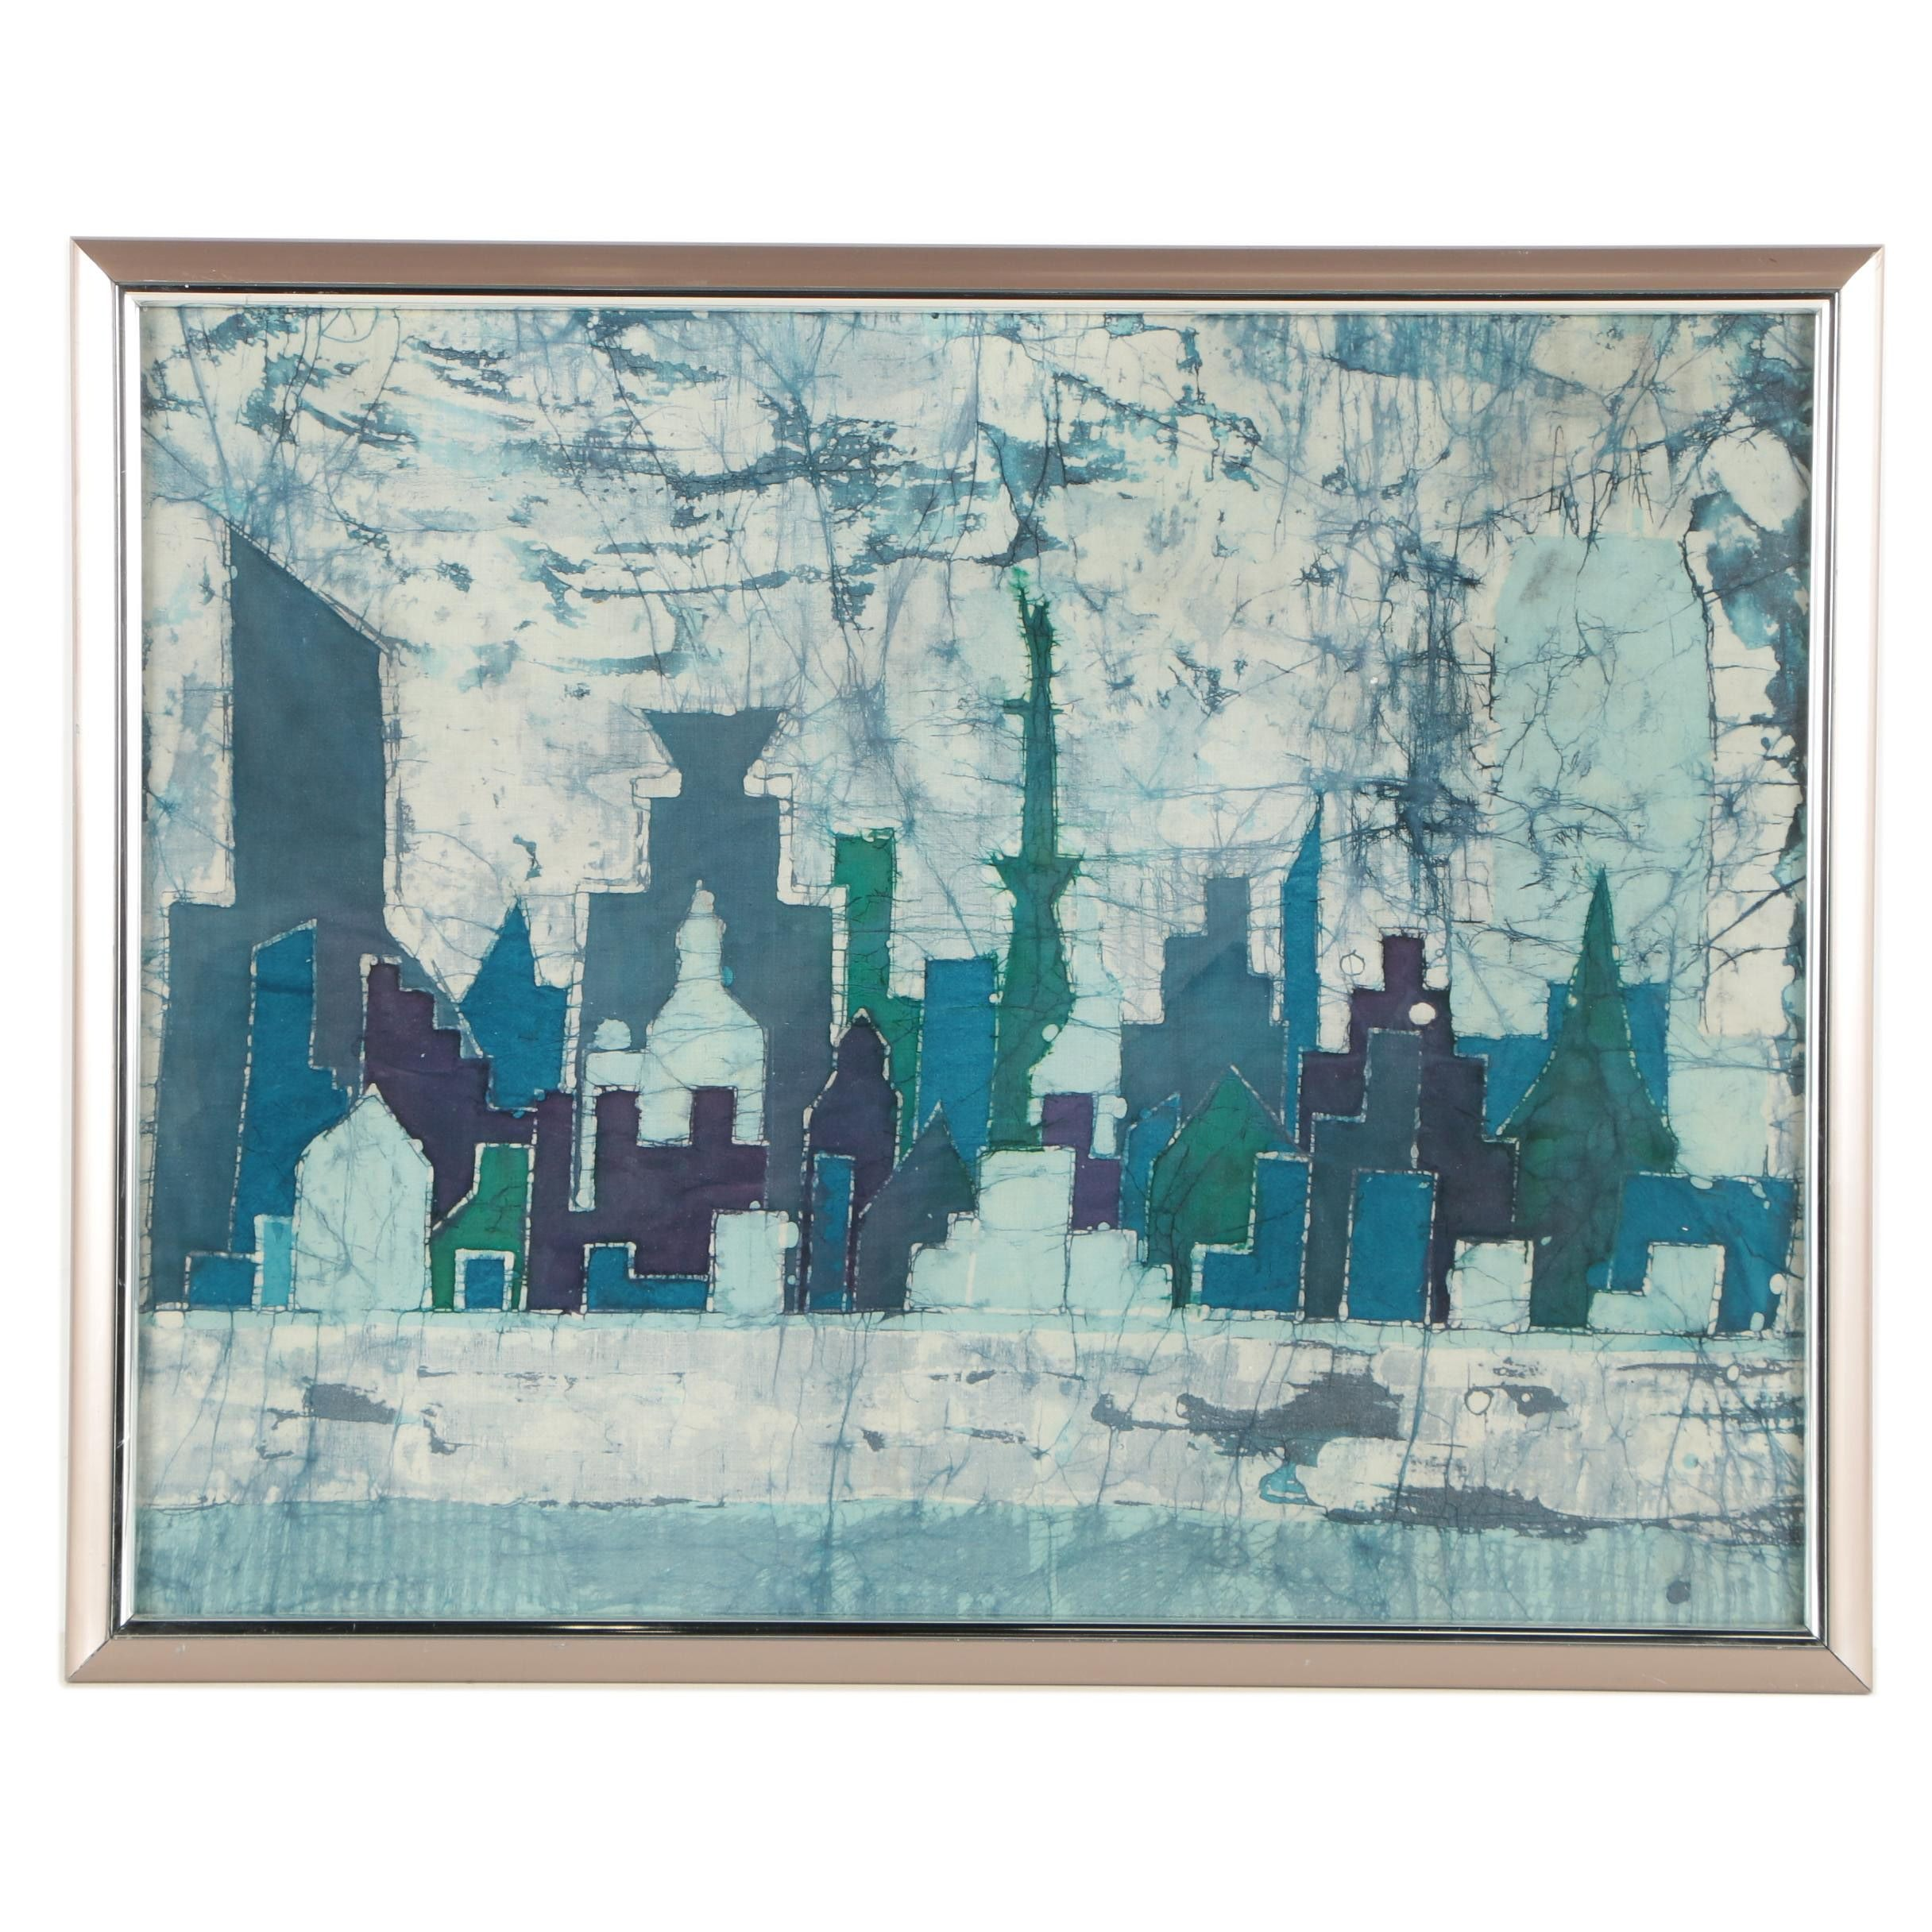 Batik of Abstract City Skyline